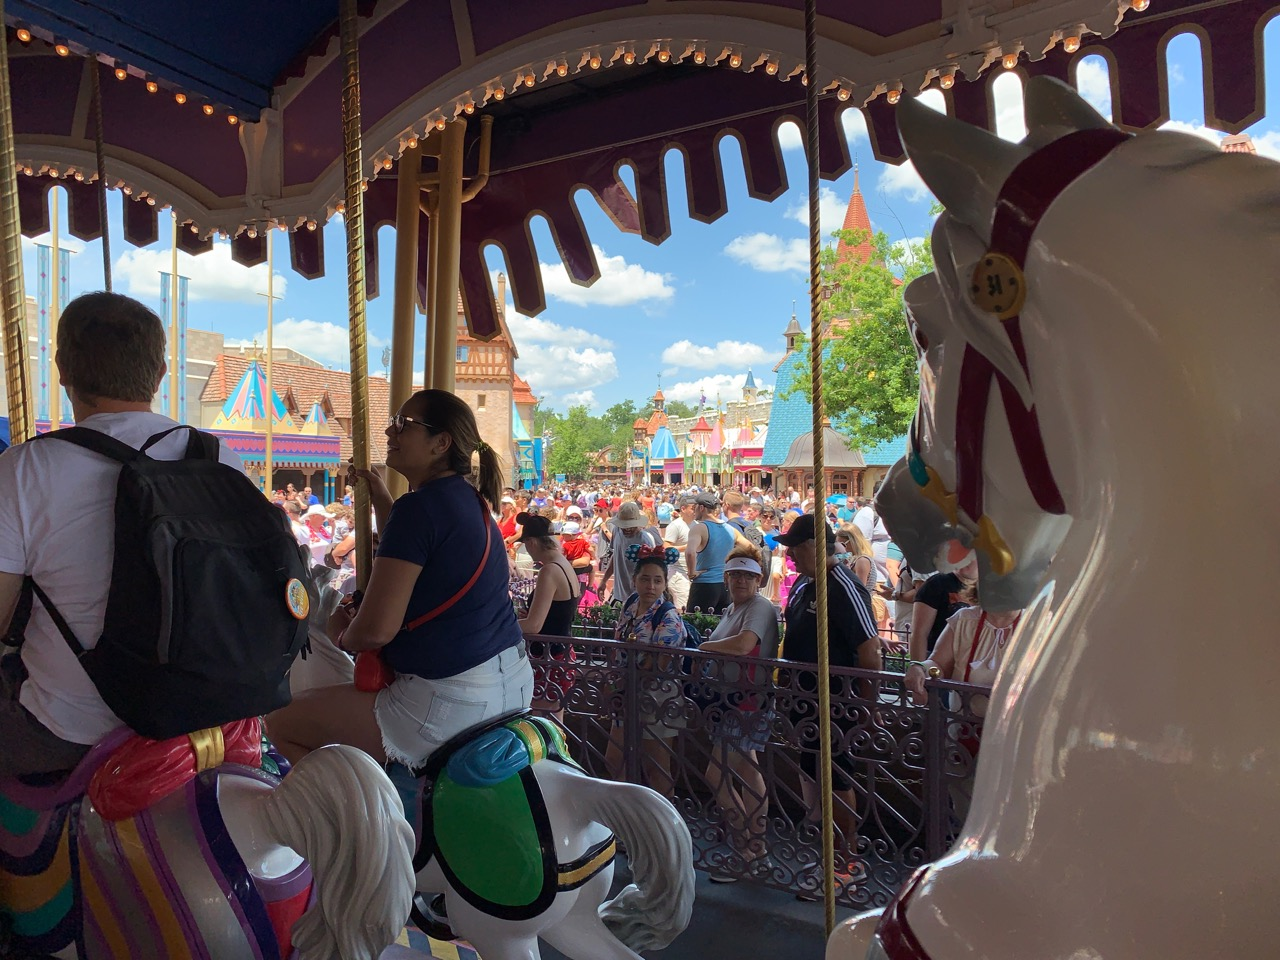 disney world trip report early summer 2019 day five 43 carrousel.jpeg